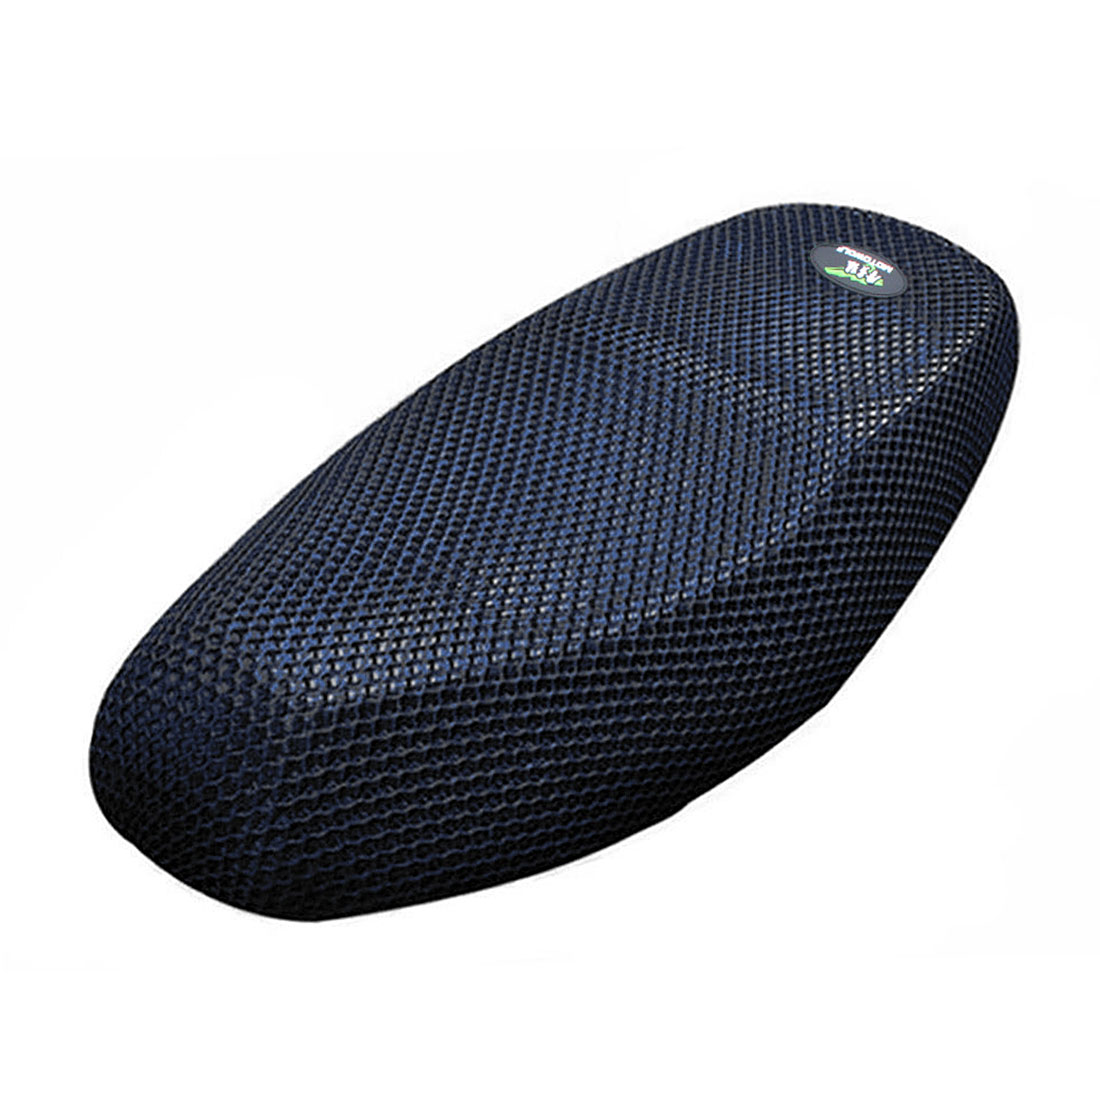 L Heat Resistant Breathable Seat Saddle 3D Mesh Cover Black Blue for Motorcycle